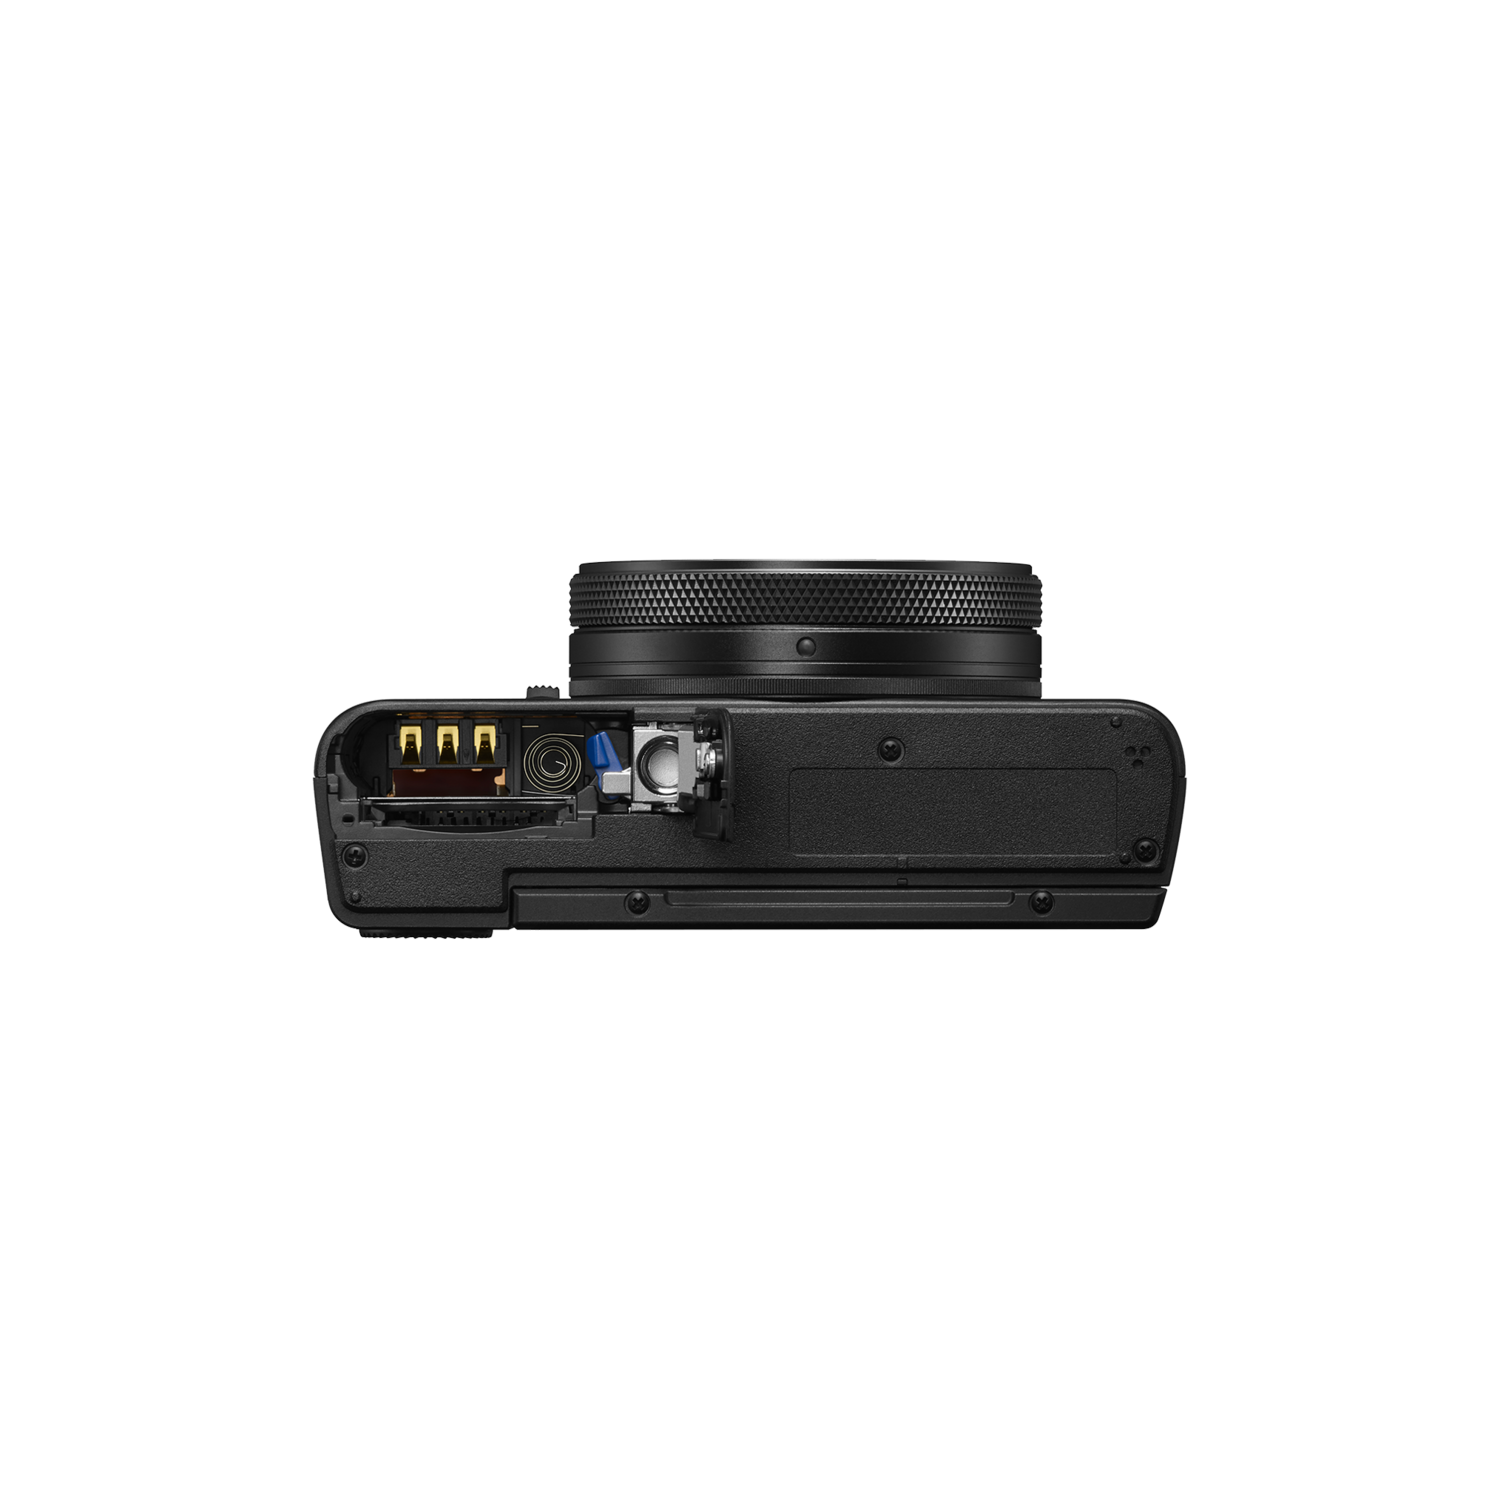 RX100 VII Ultra Fast Broad Zoom Camera with Real-time Tracking and Eye AF, , hi-res